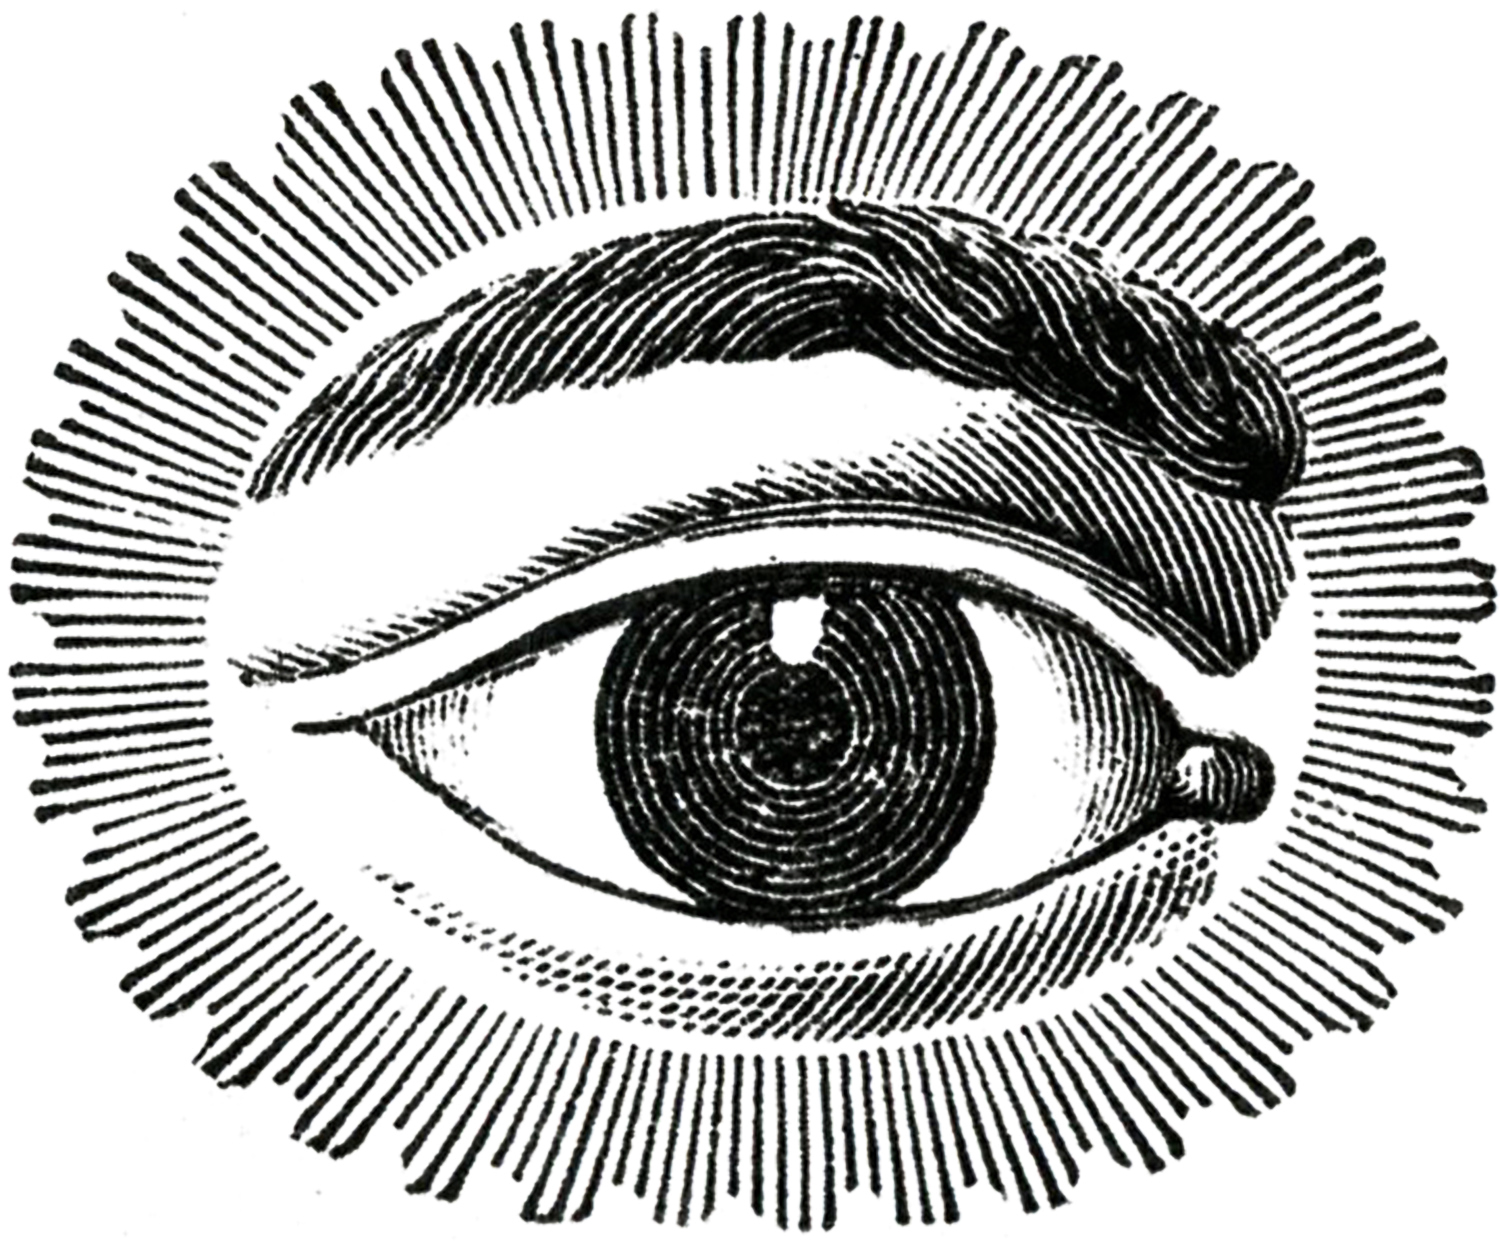 1500x1247 Free Public Domain Image Watching Eye